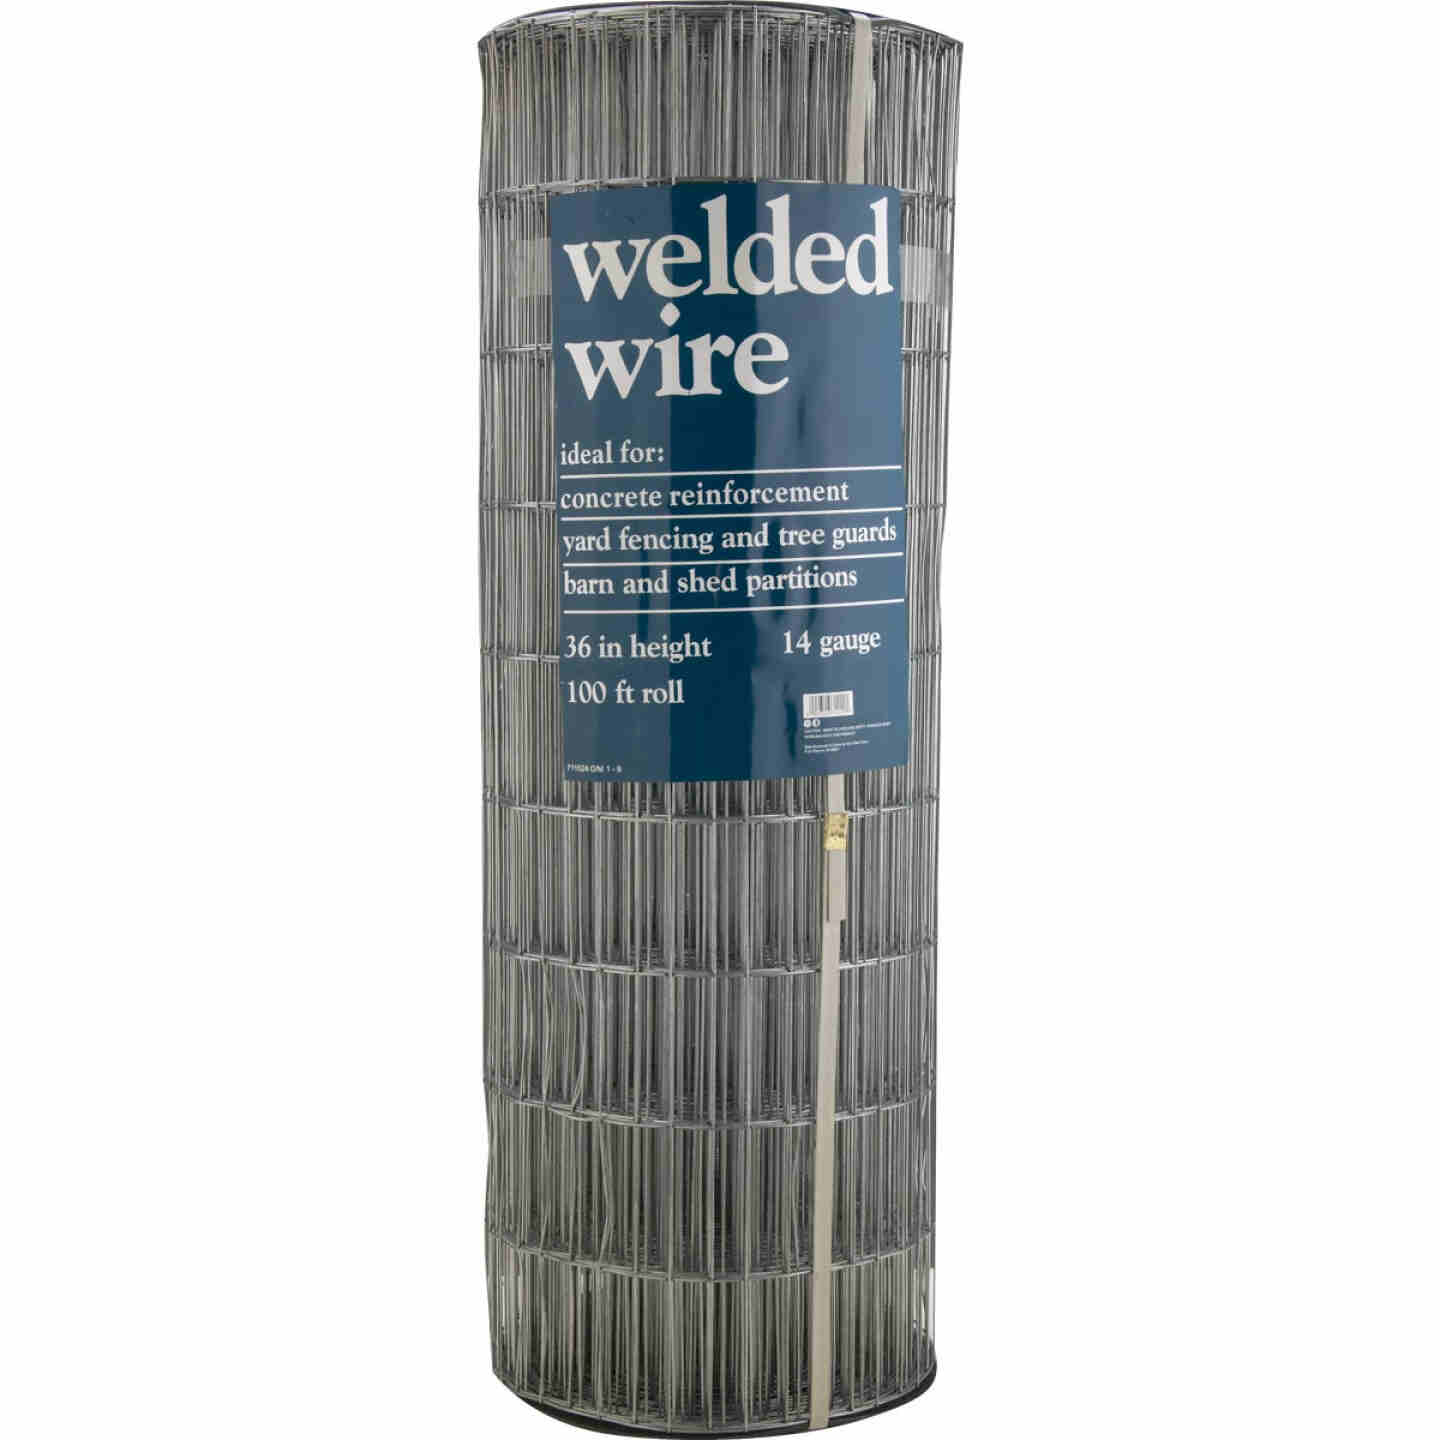 36 In. H. x 100 Ft. L. (2x4) Galvanized Welded Wire Fence Image 2